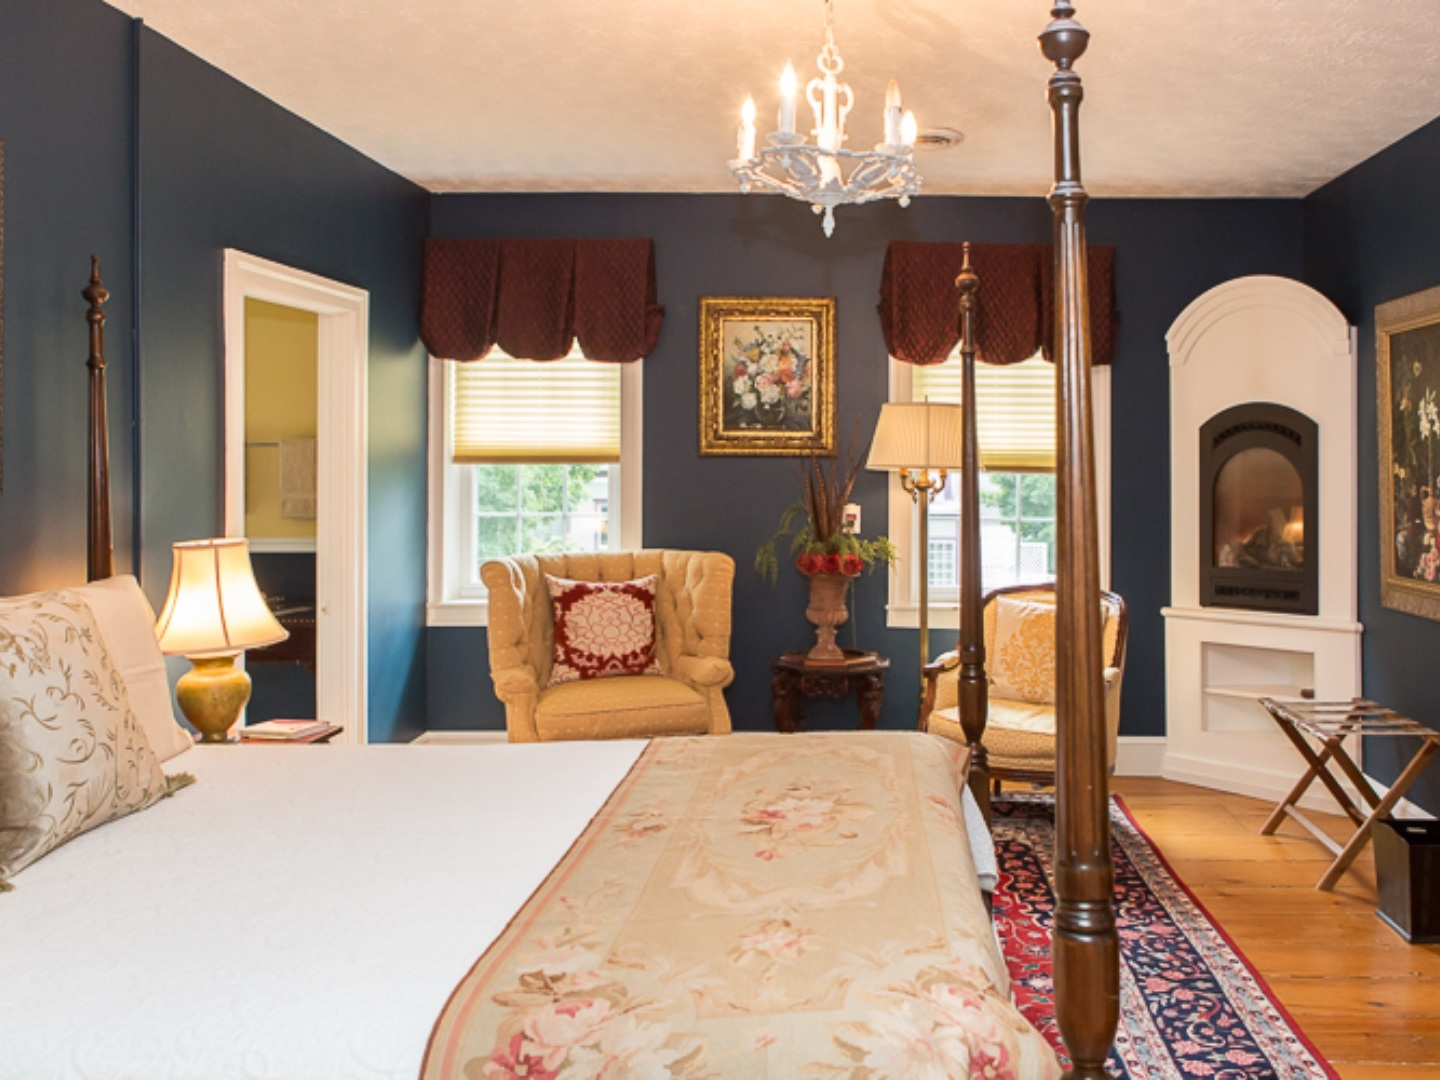 A bedroom with a bed and a table in a room at Monier Manor.